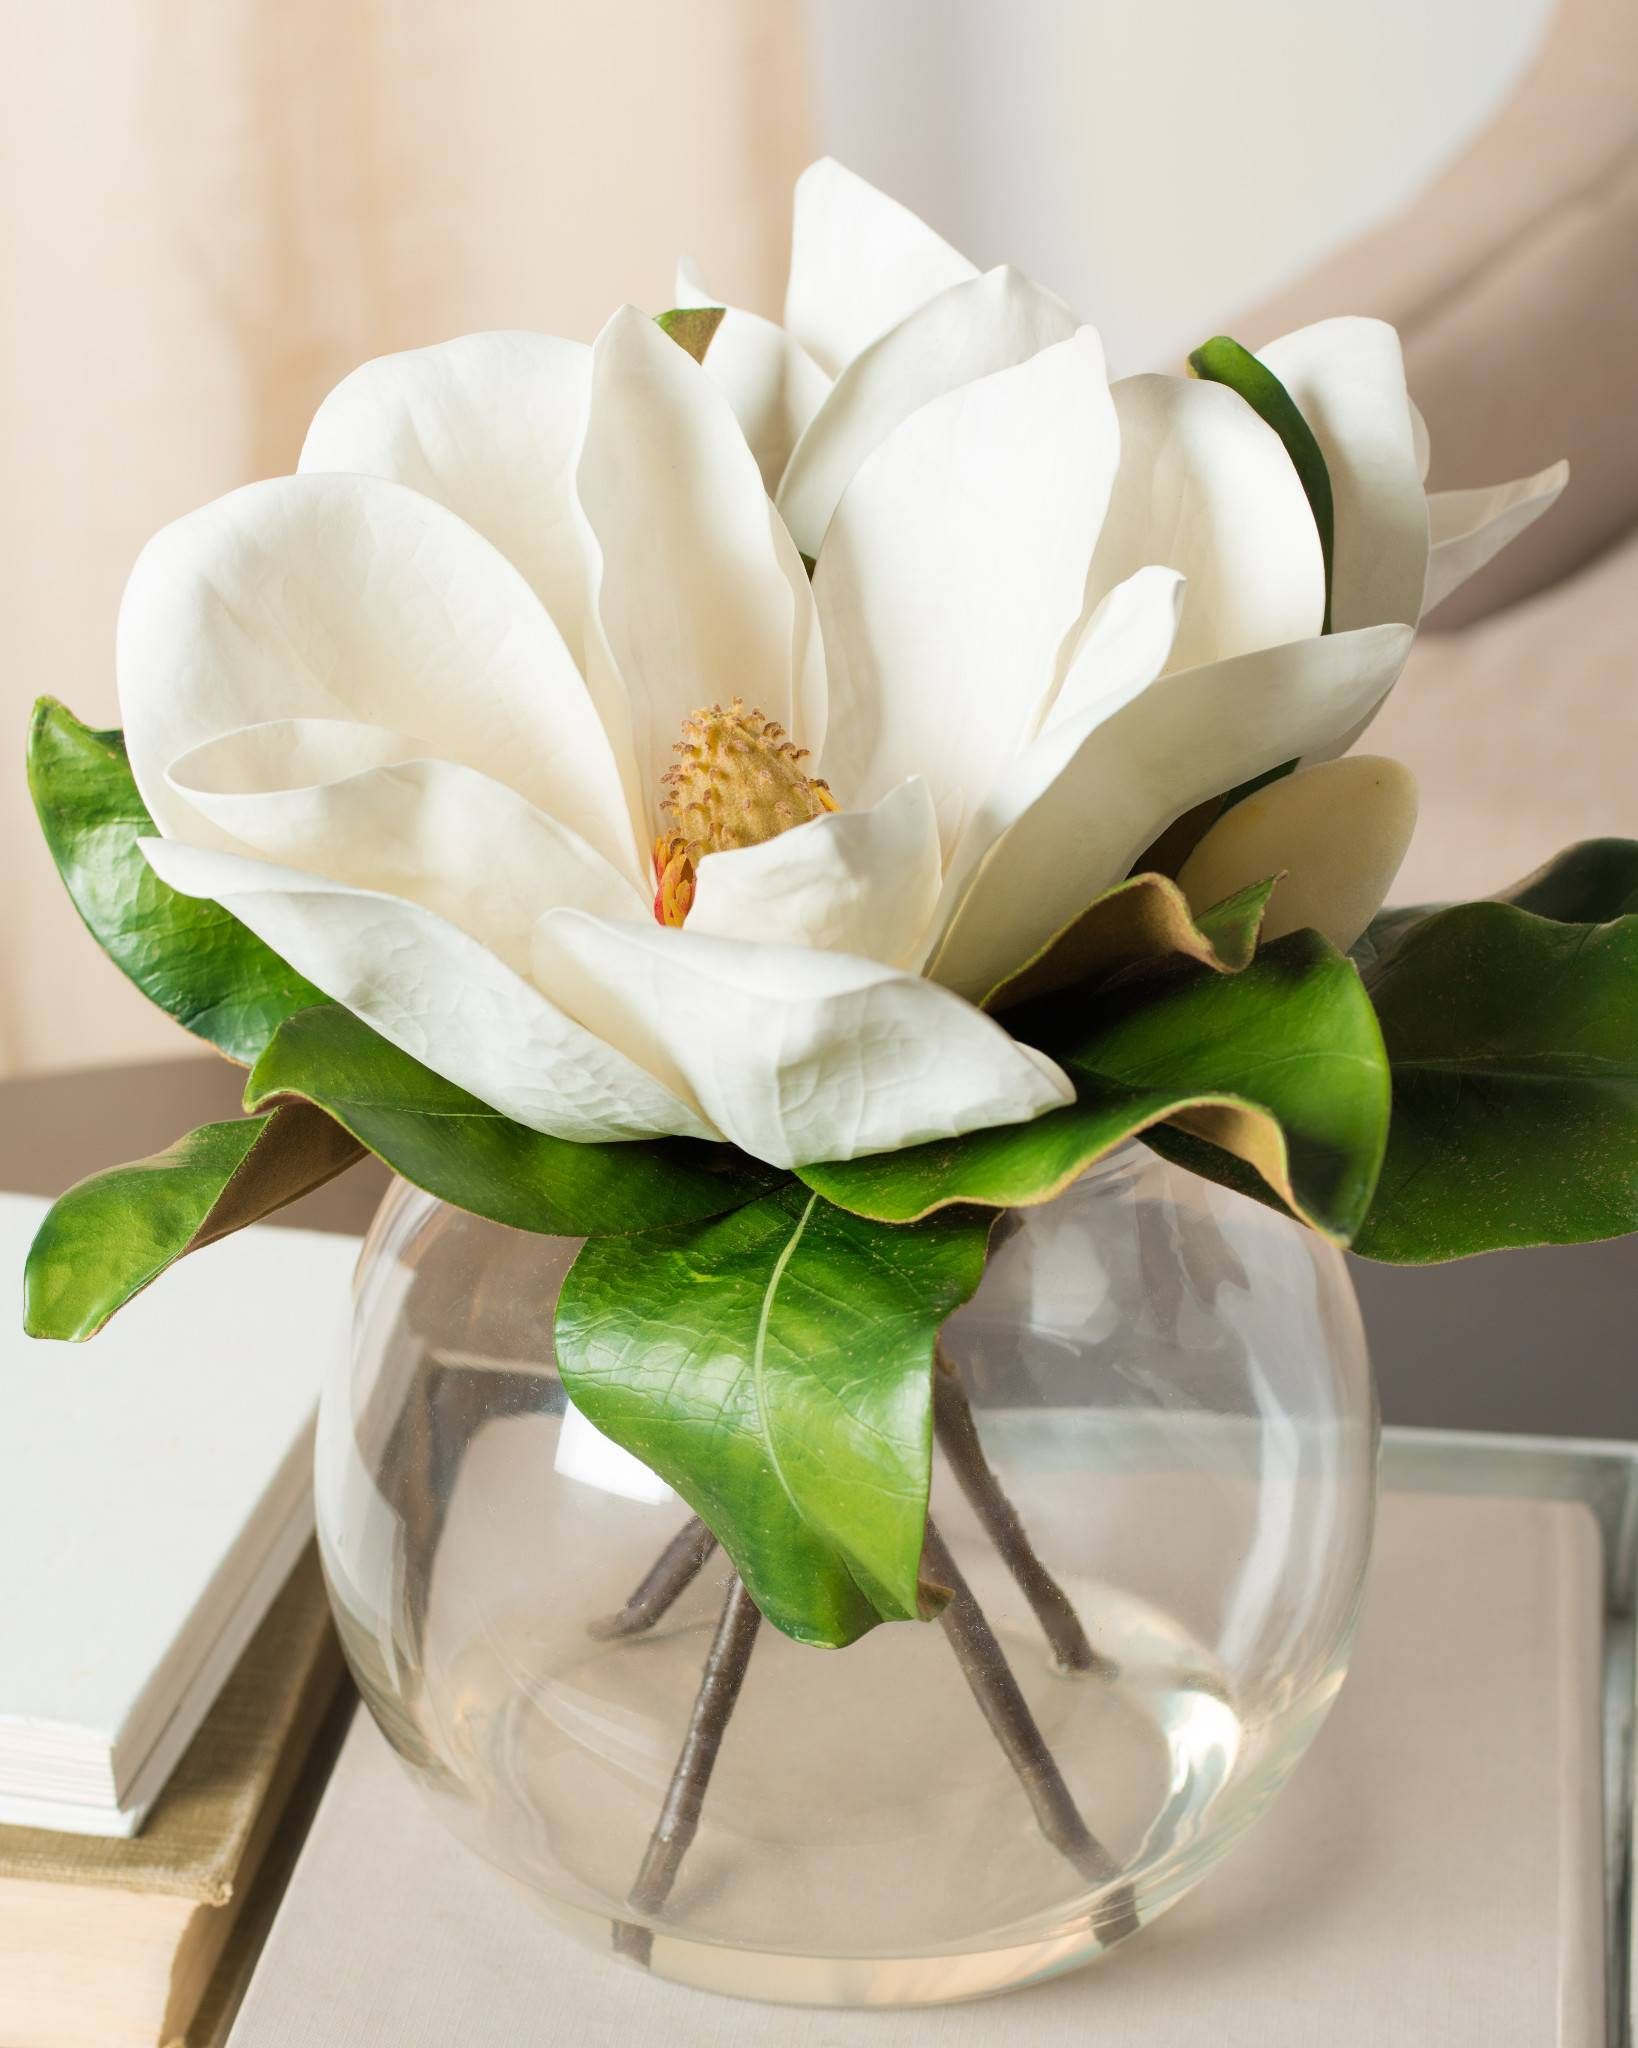 Balsam Hill S Magnolia Flower Arrangement Gives Your Guests A Warm Southern Welcome With The Enduring Flower Arrangements Magnolia Centerpiece Magnolia Flower